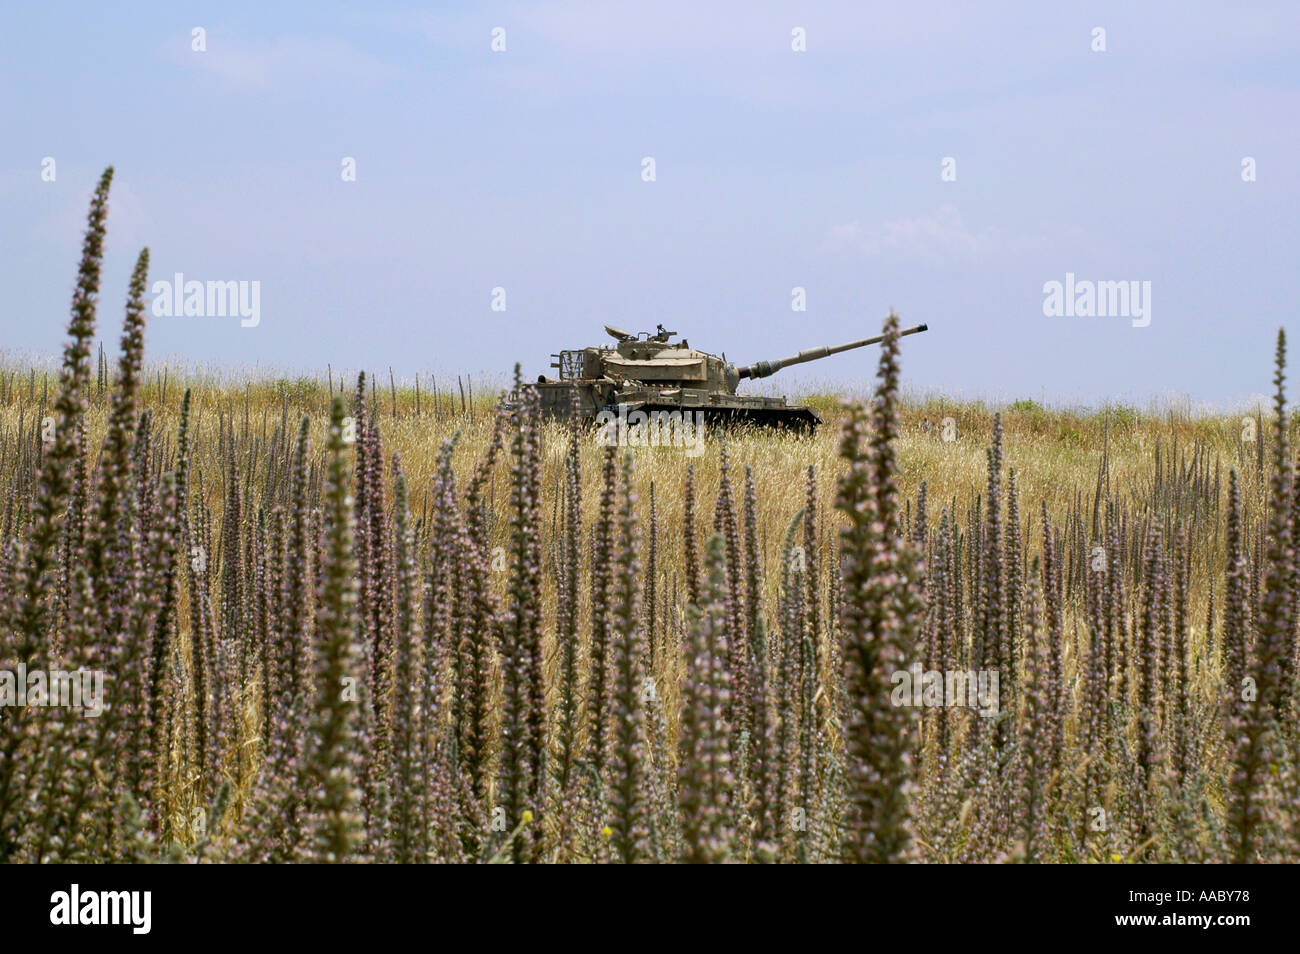 Israeli tank in the Golan heights near the Syrian border Israel - Stock Image